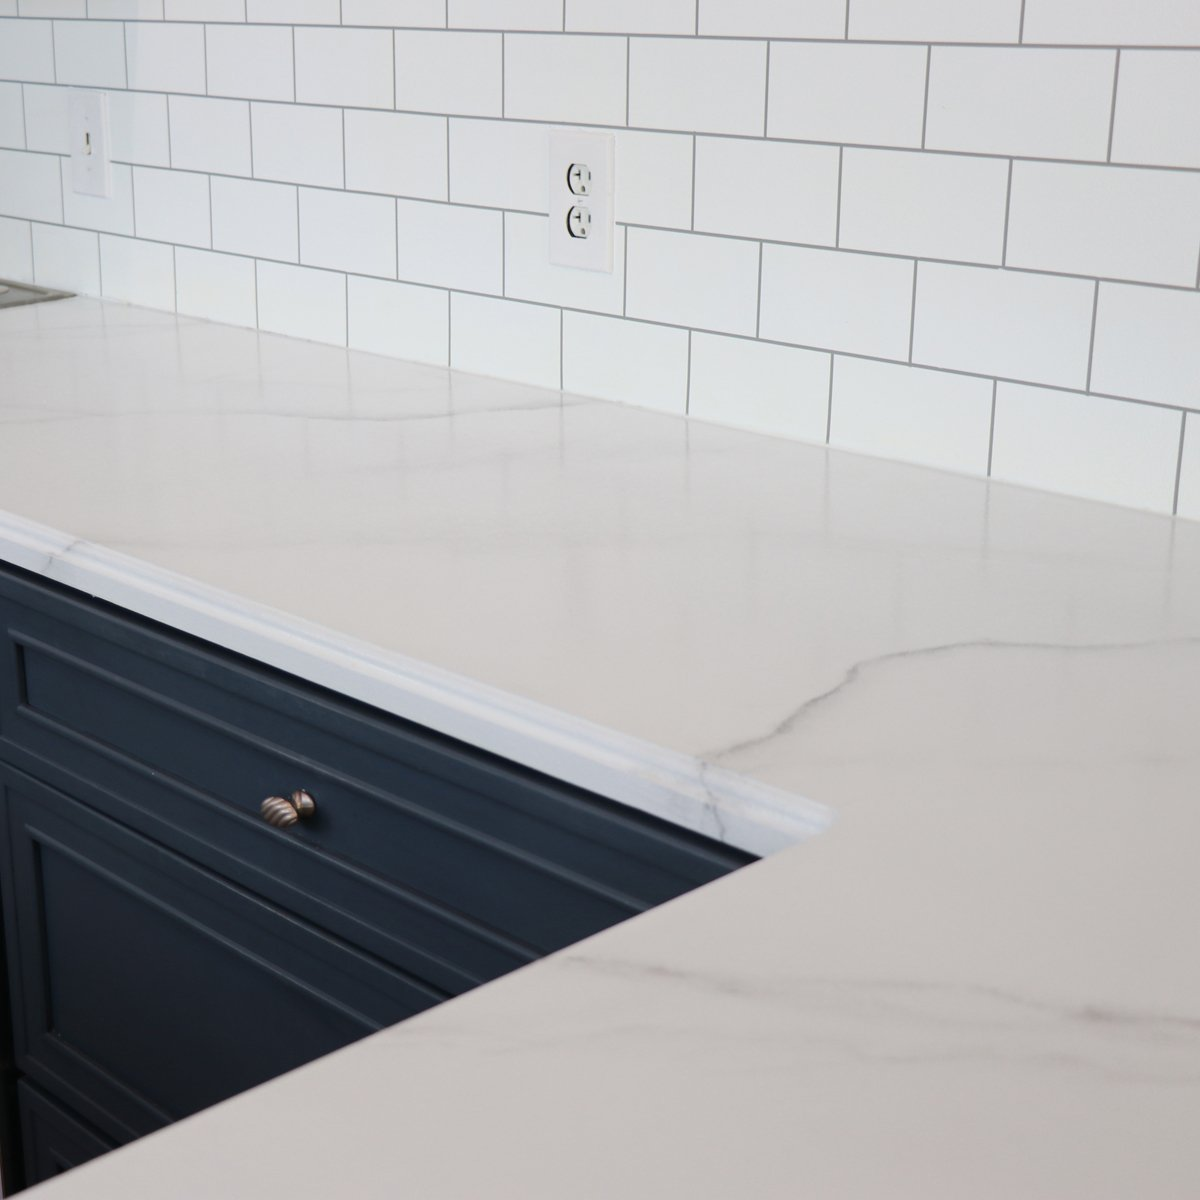 This Diy Faux Marble Paint Kit Will Transform Your Kitchen For Under 90